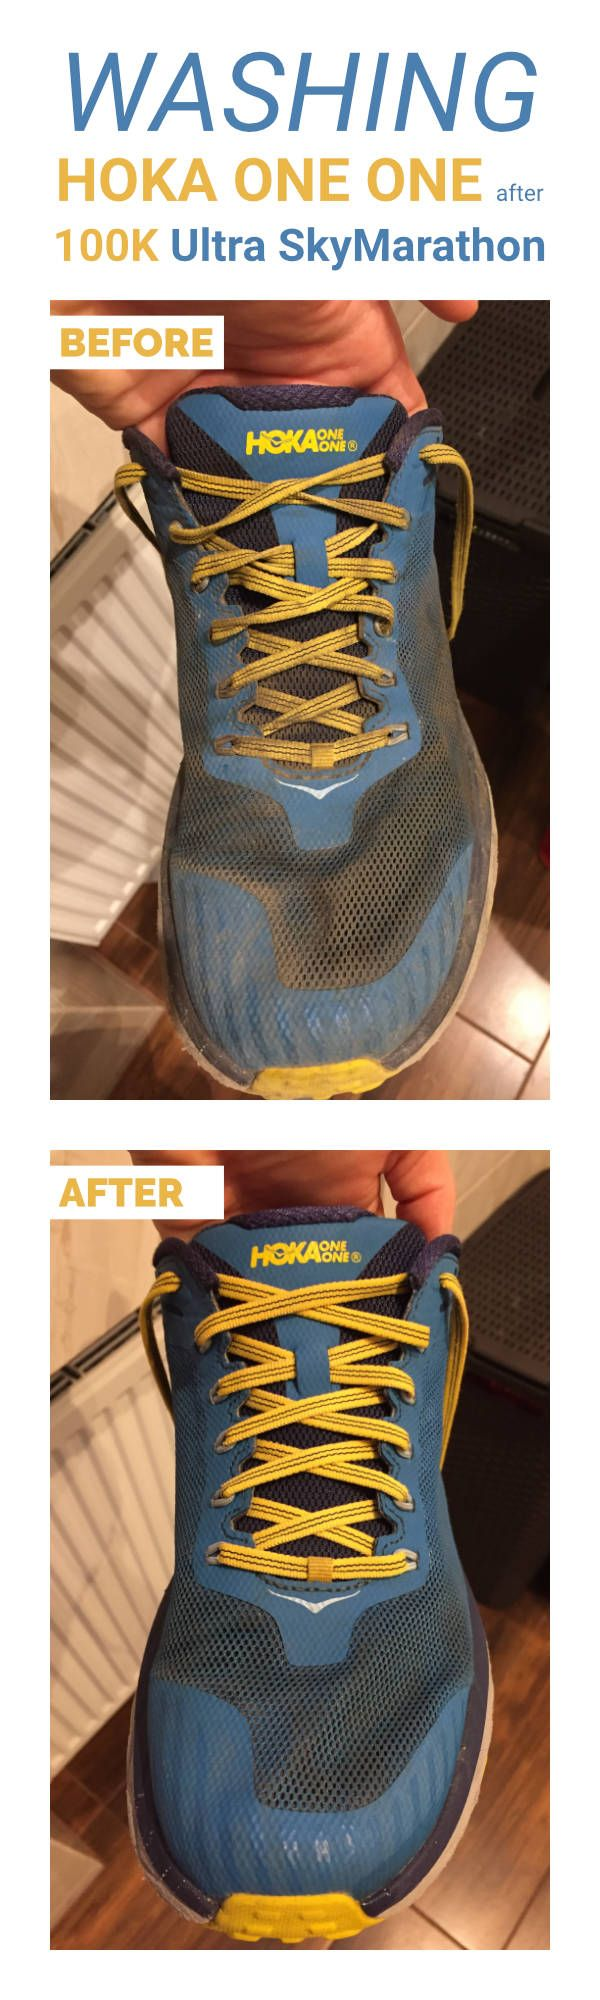 How to wash Hoka One One shoes (after